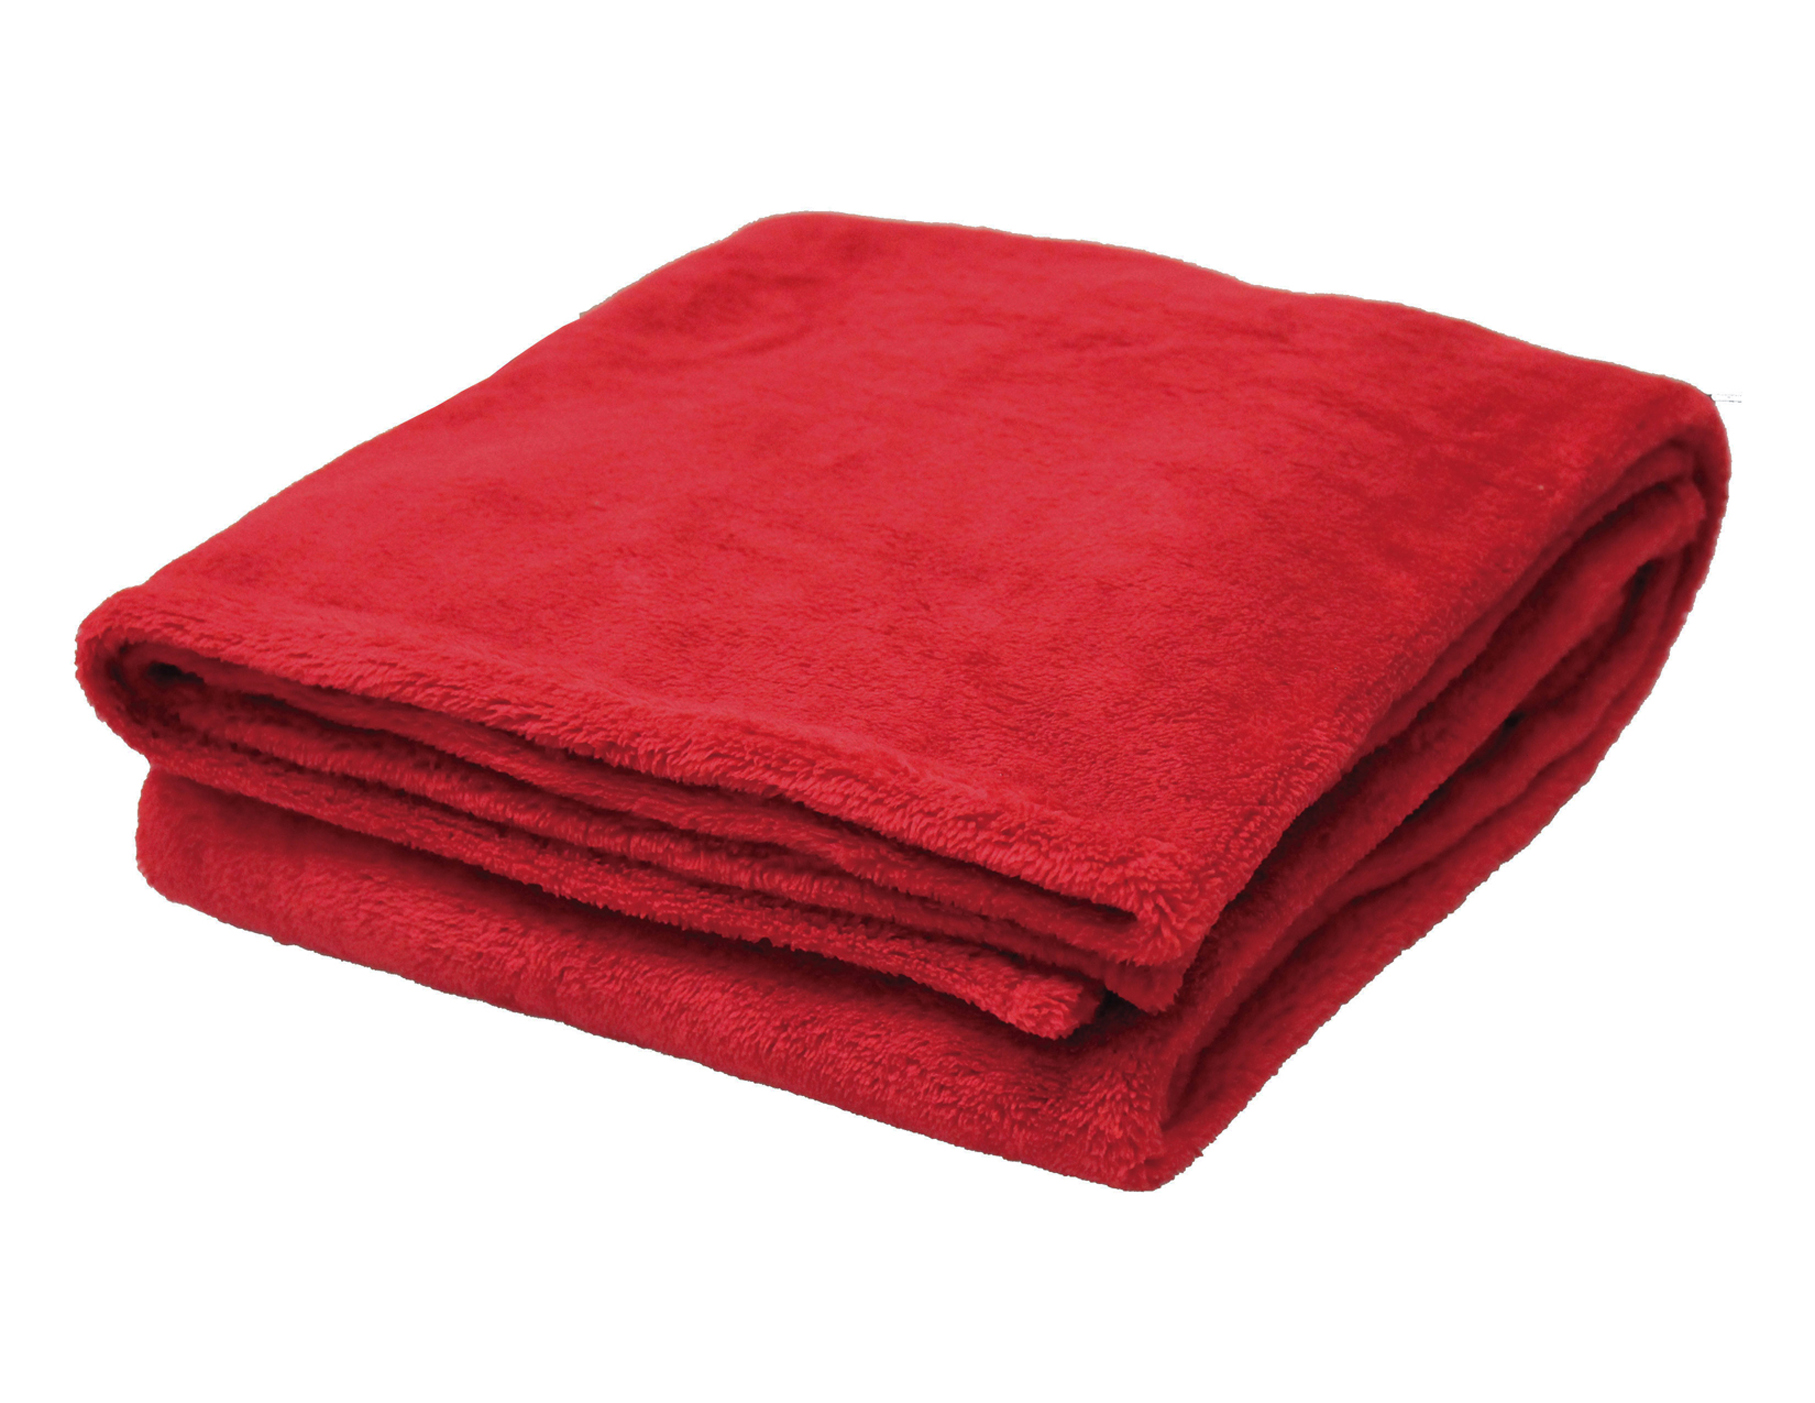 Soft Touch Velura Kanata Blanket Simple And Cozy